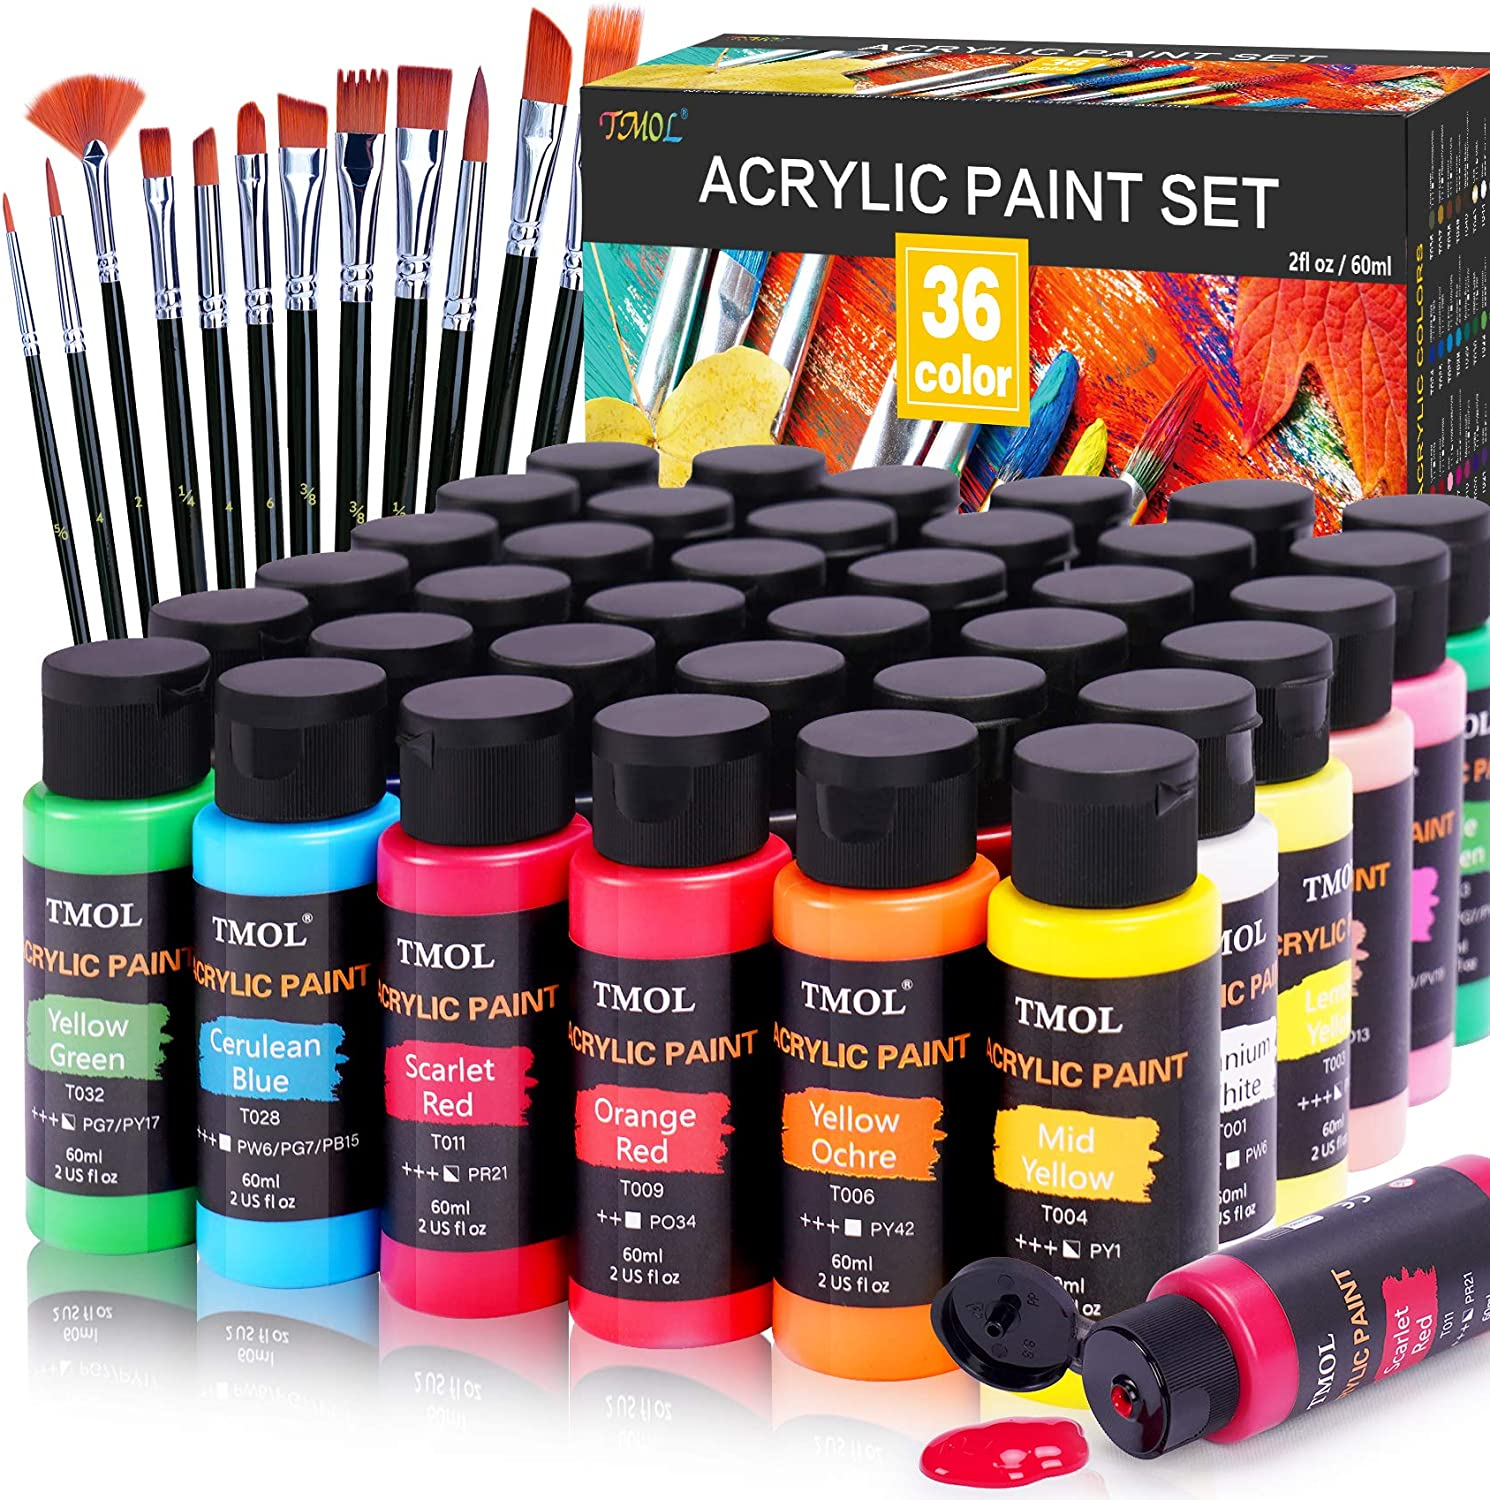 Acrylic Paint Set, 36 Colors (2 oz/Bottle) with 12 Art Brushes, Art Supplies for Painting Canvas, Wood, Ceramic & Fabric, Rich Pigments Lasting Quality for Beginners, Students & Professional Artist